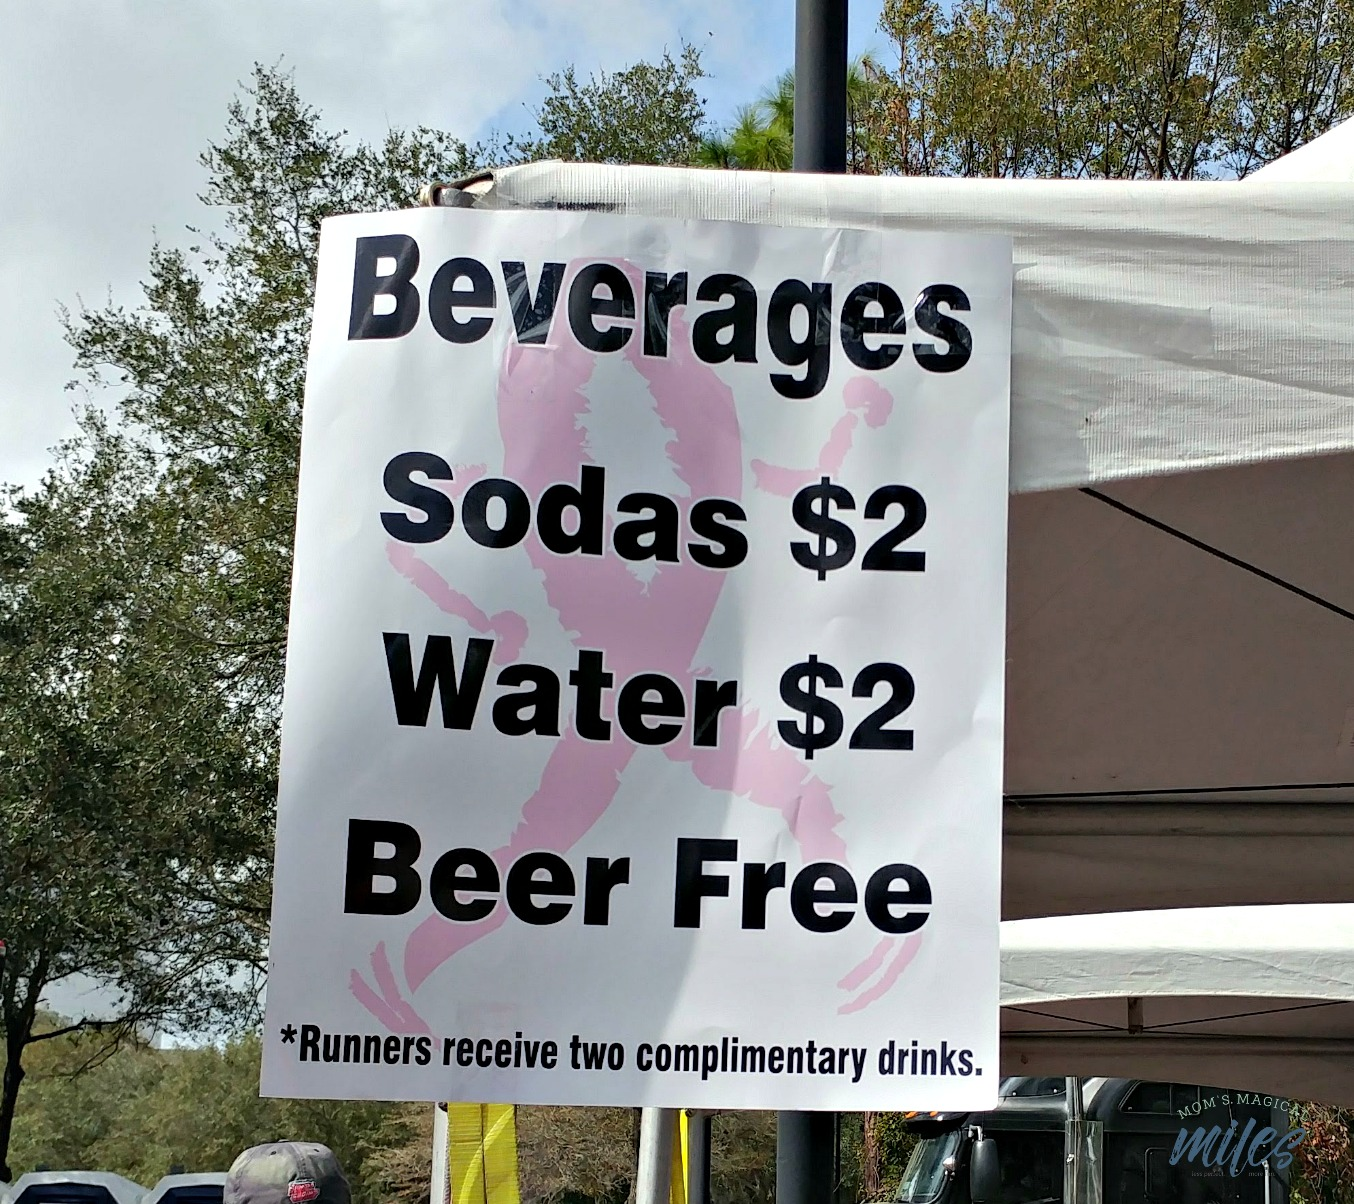 Free beer at the end of the Donna Half in Jacksonville, FL? Yes, please!